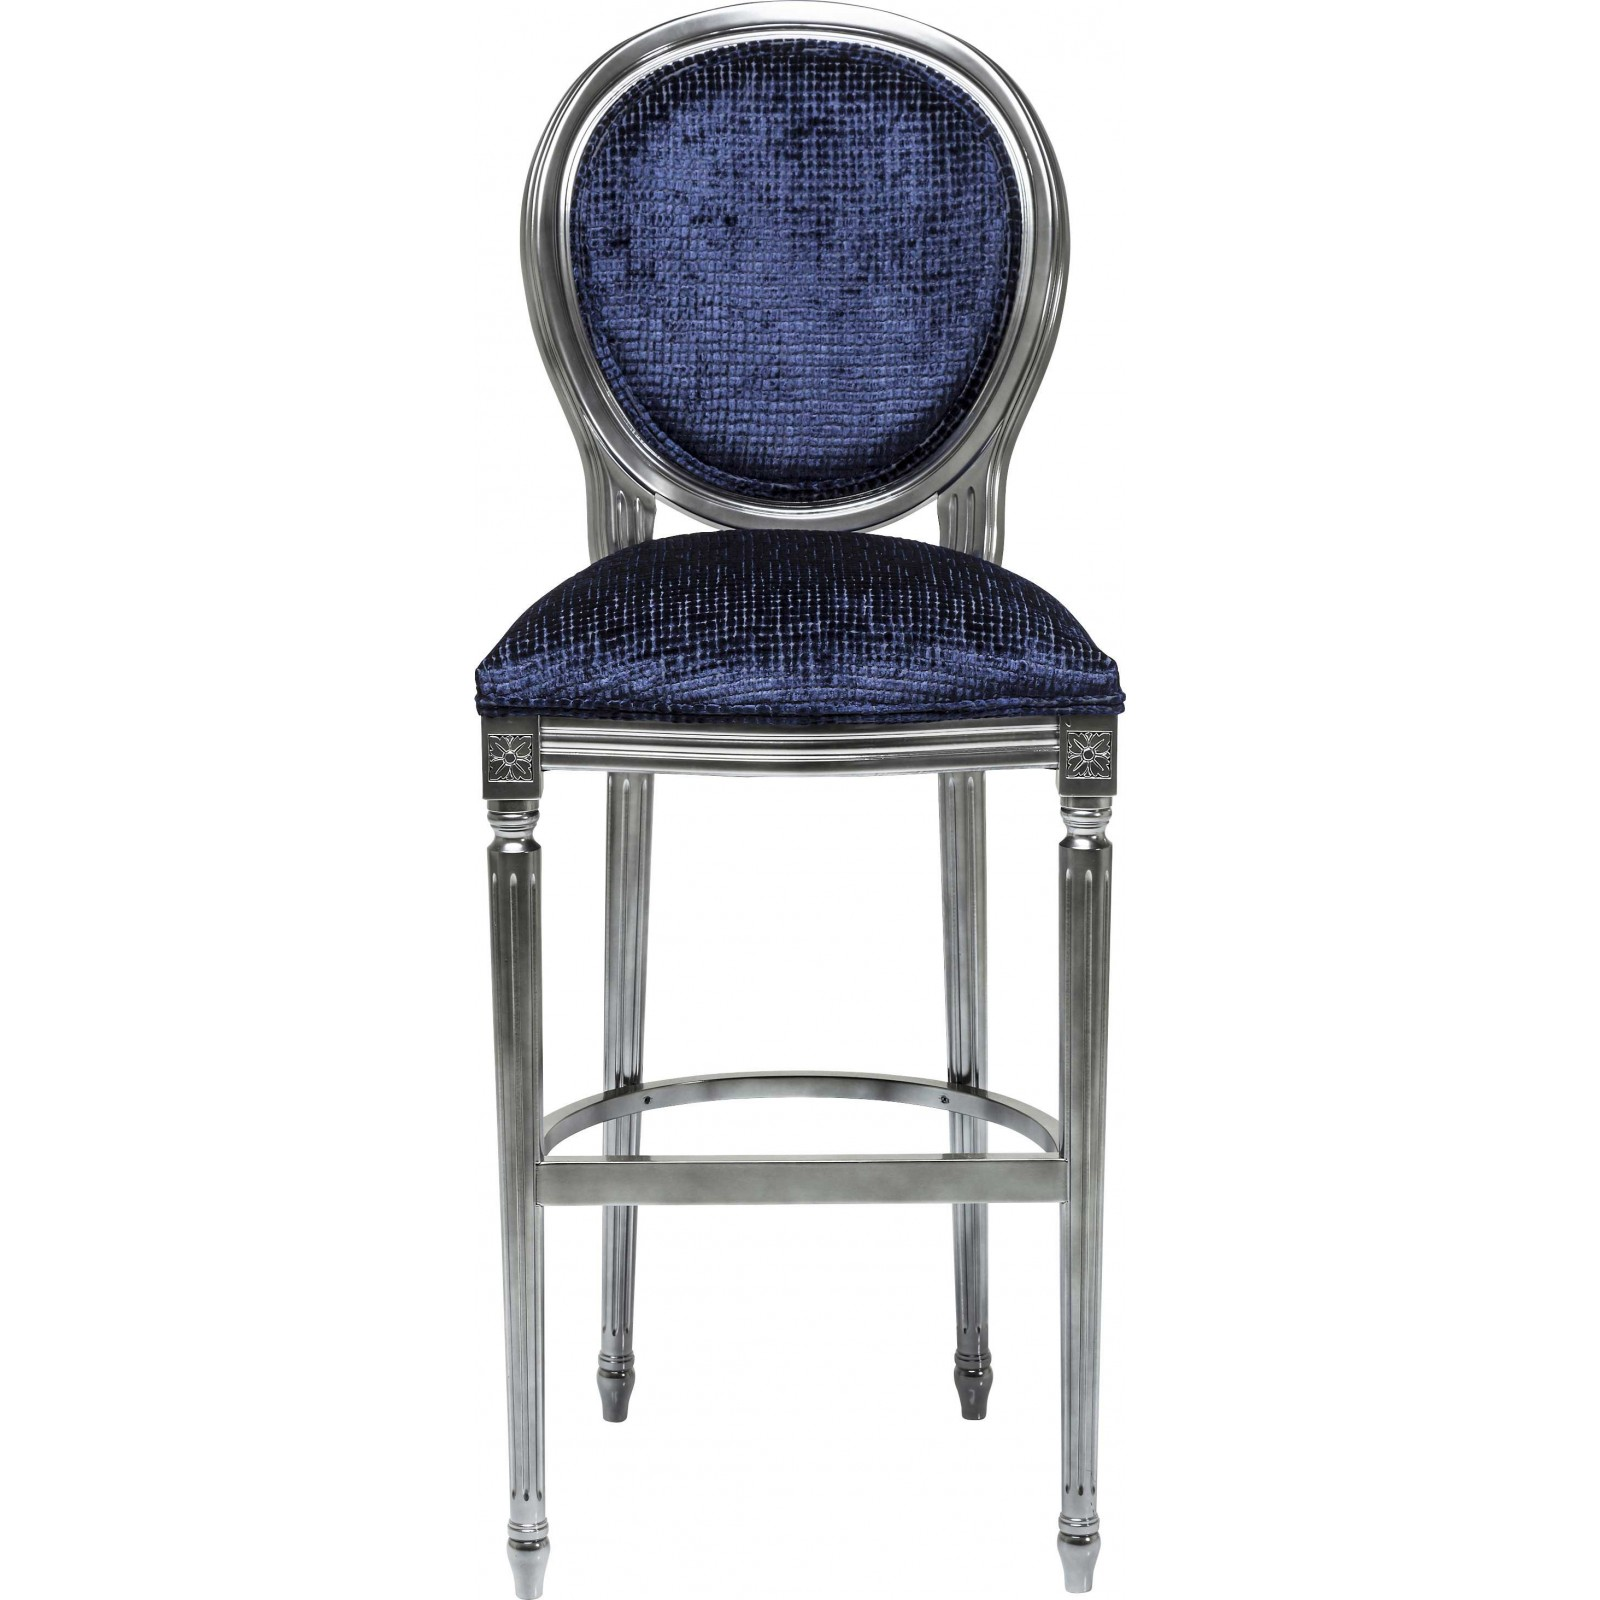 tabouret de bar baroque bleu fonc posh kare design. Black Bedroom Furniture Sets. Home Design Ideas